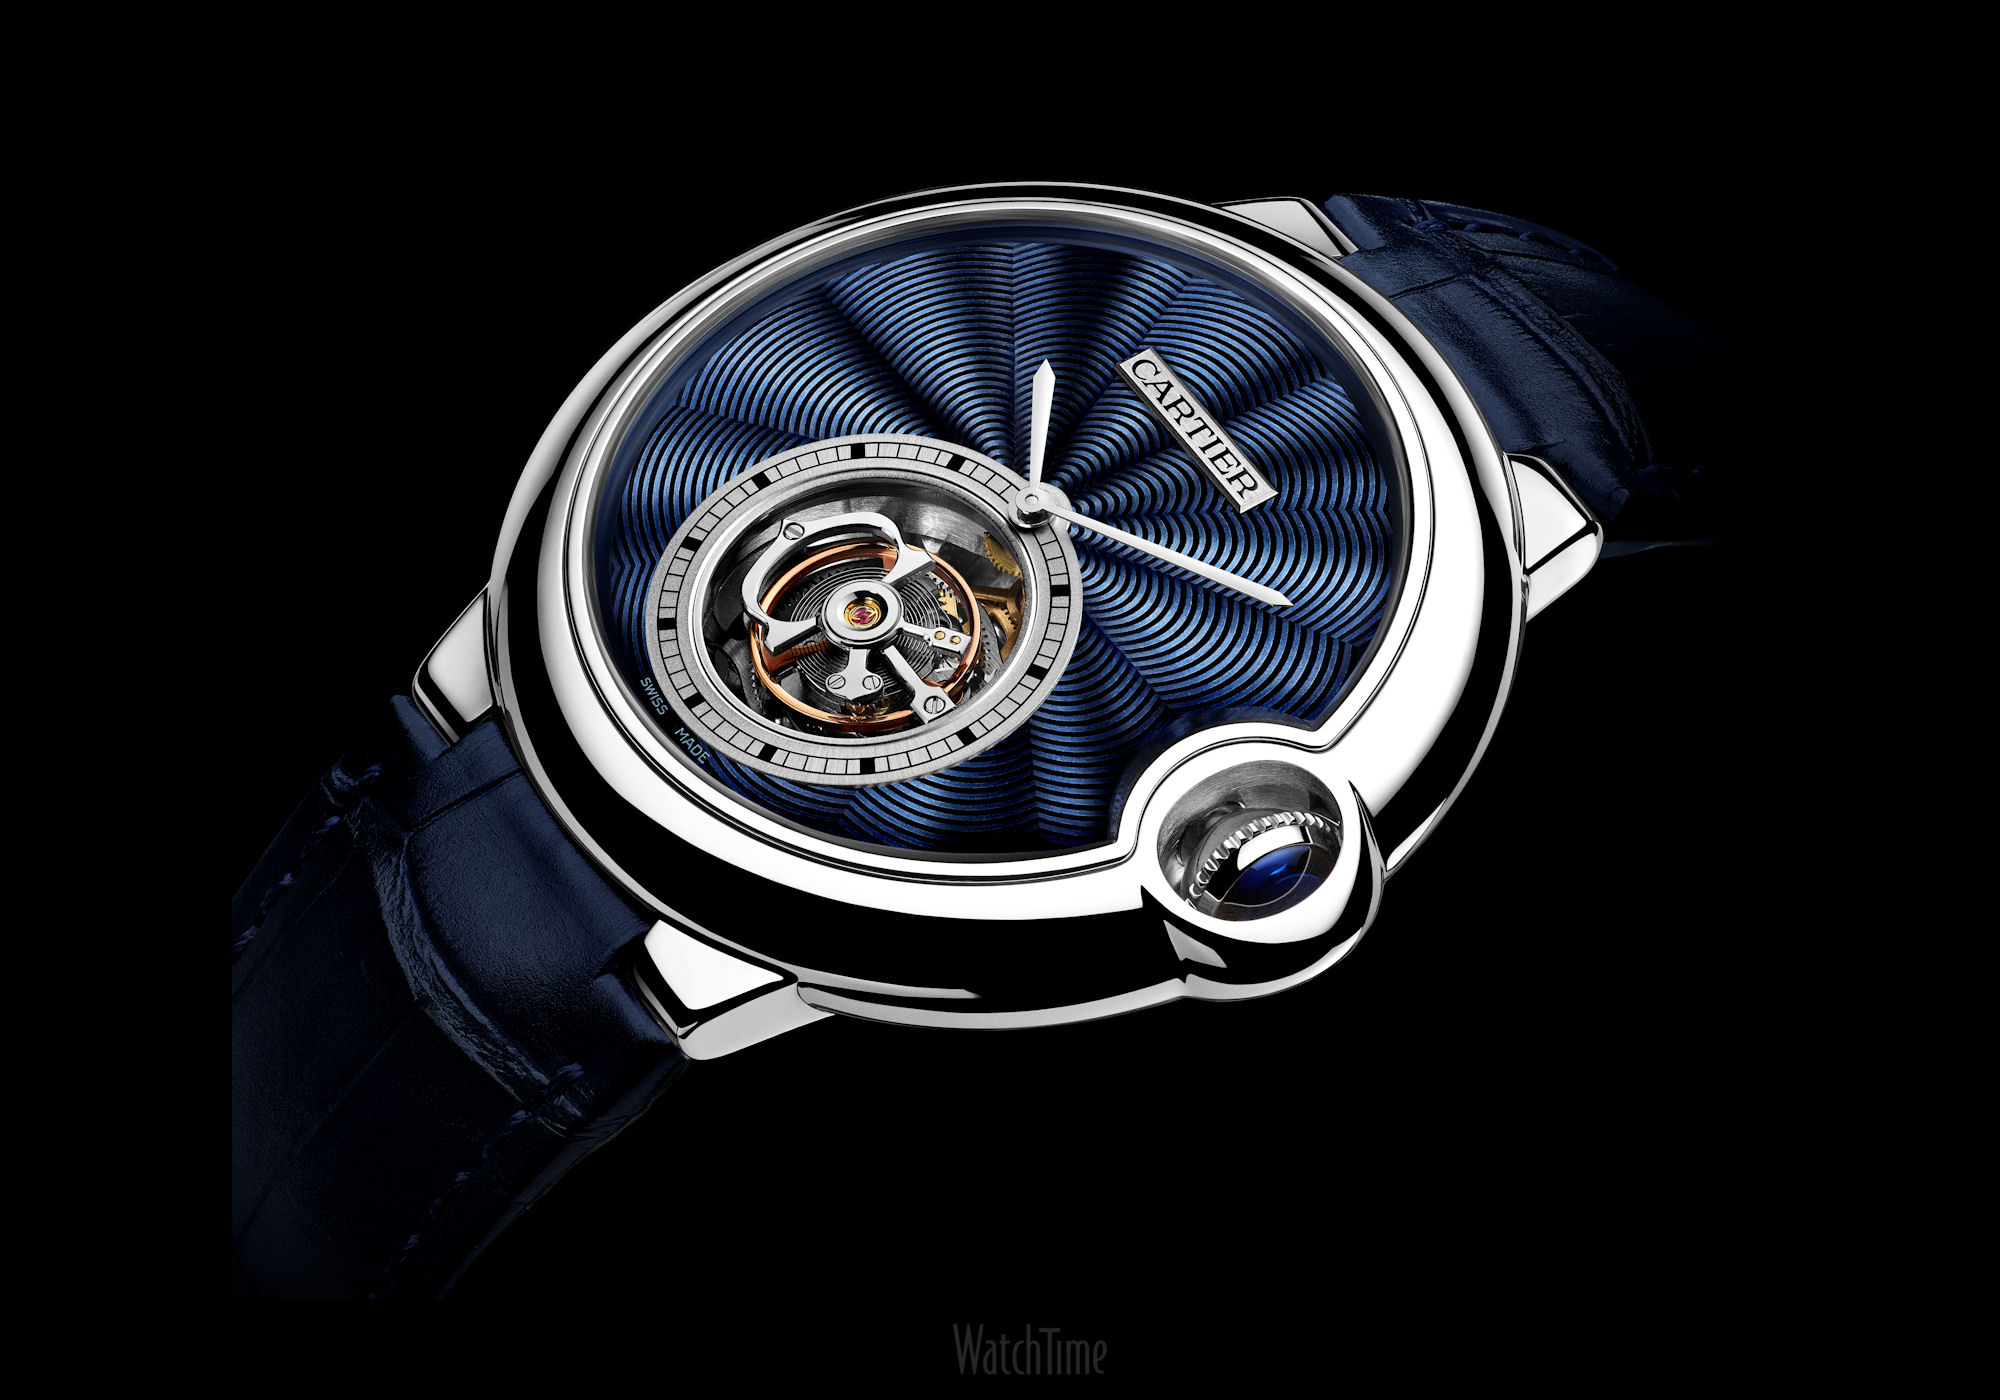 Cartier Watches Watch Wallpaper 11 Cartier Watches From Sihh Watchtime Usa S